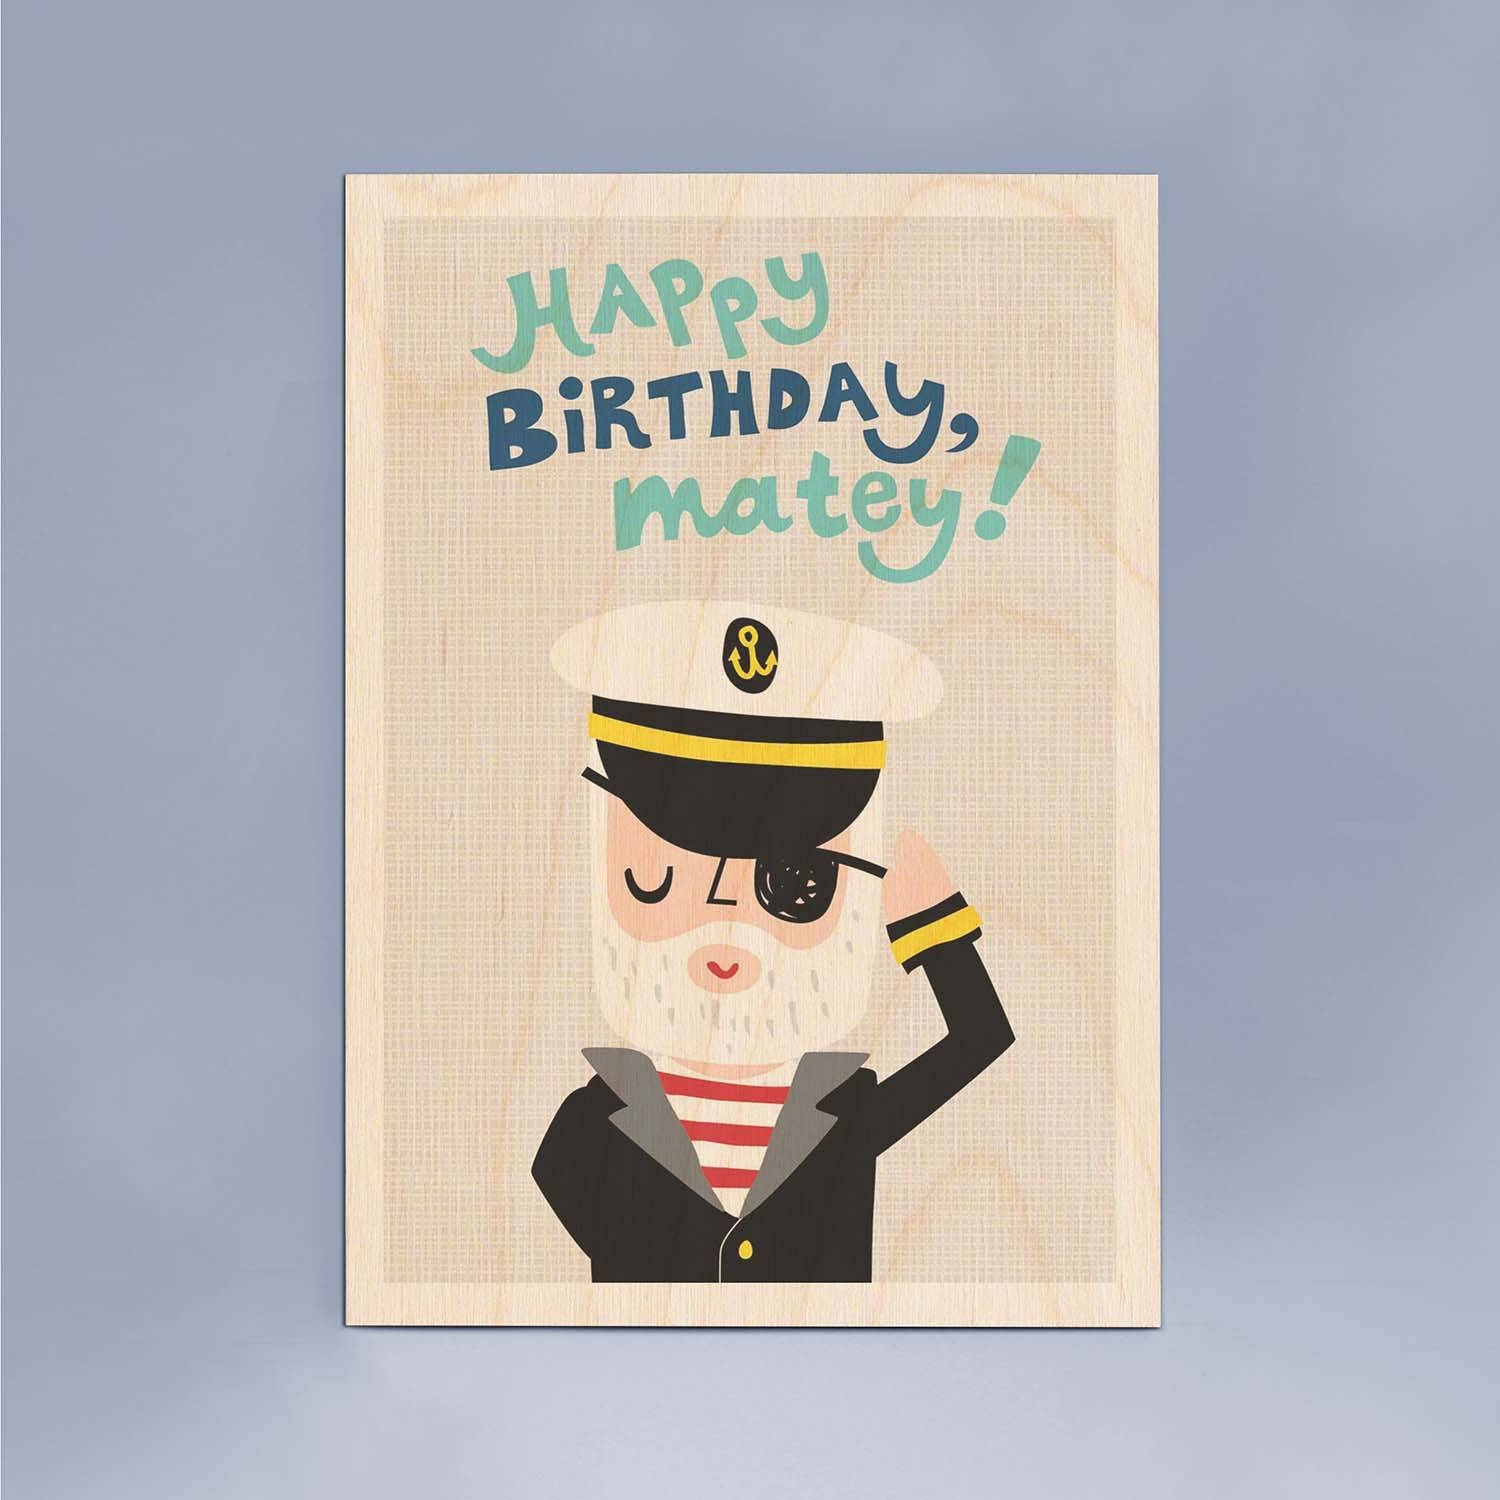 Happy Birthday Matey Wooden Timbergram Wall Art – Wooden Postcards With Regard To Latest Happy Birthday Wall Art (View 14 of 20)